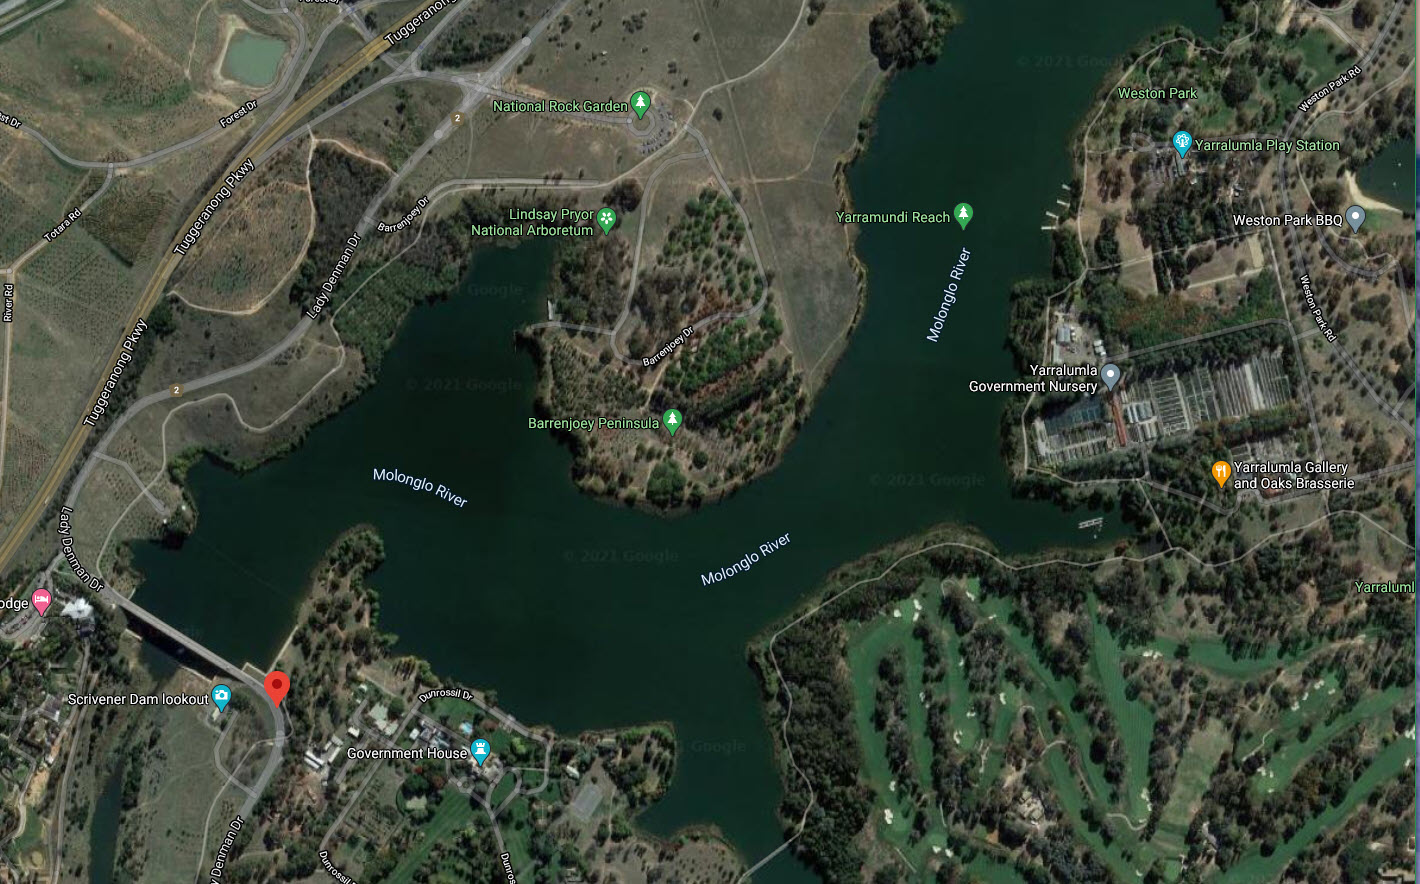 Proposed Heritage nomination of Lake Burley Griffin and Adjacent Lands, Lady Denman Dr, Yarralumla, ACT, Australia